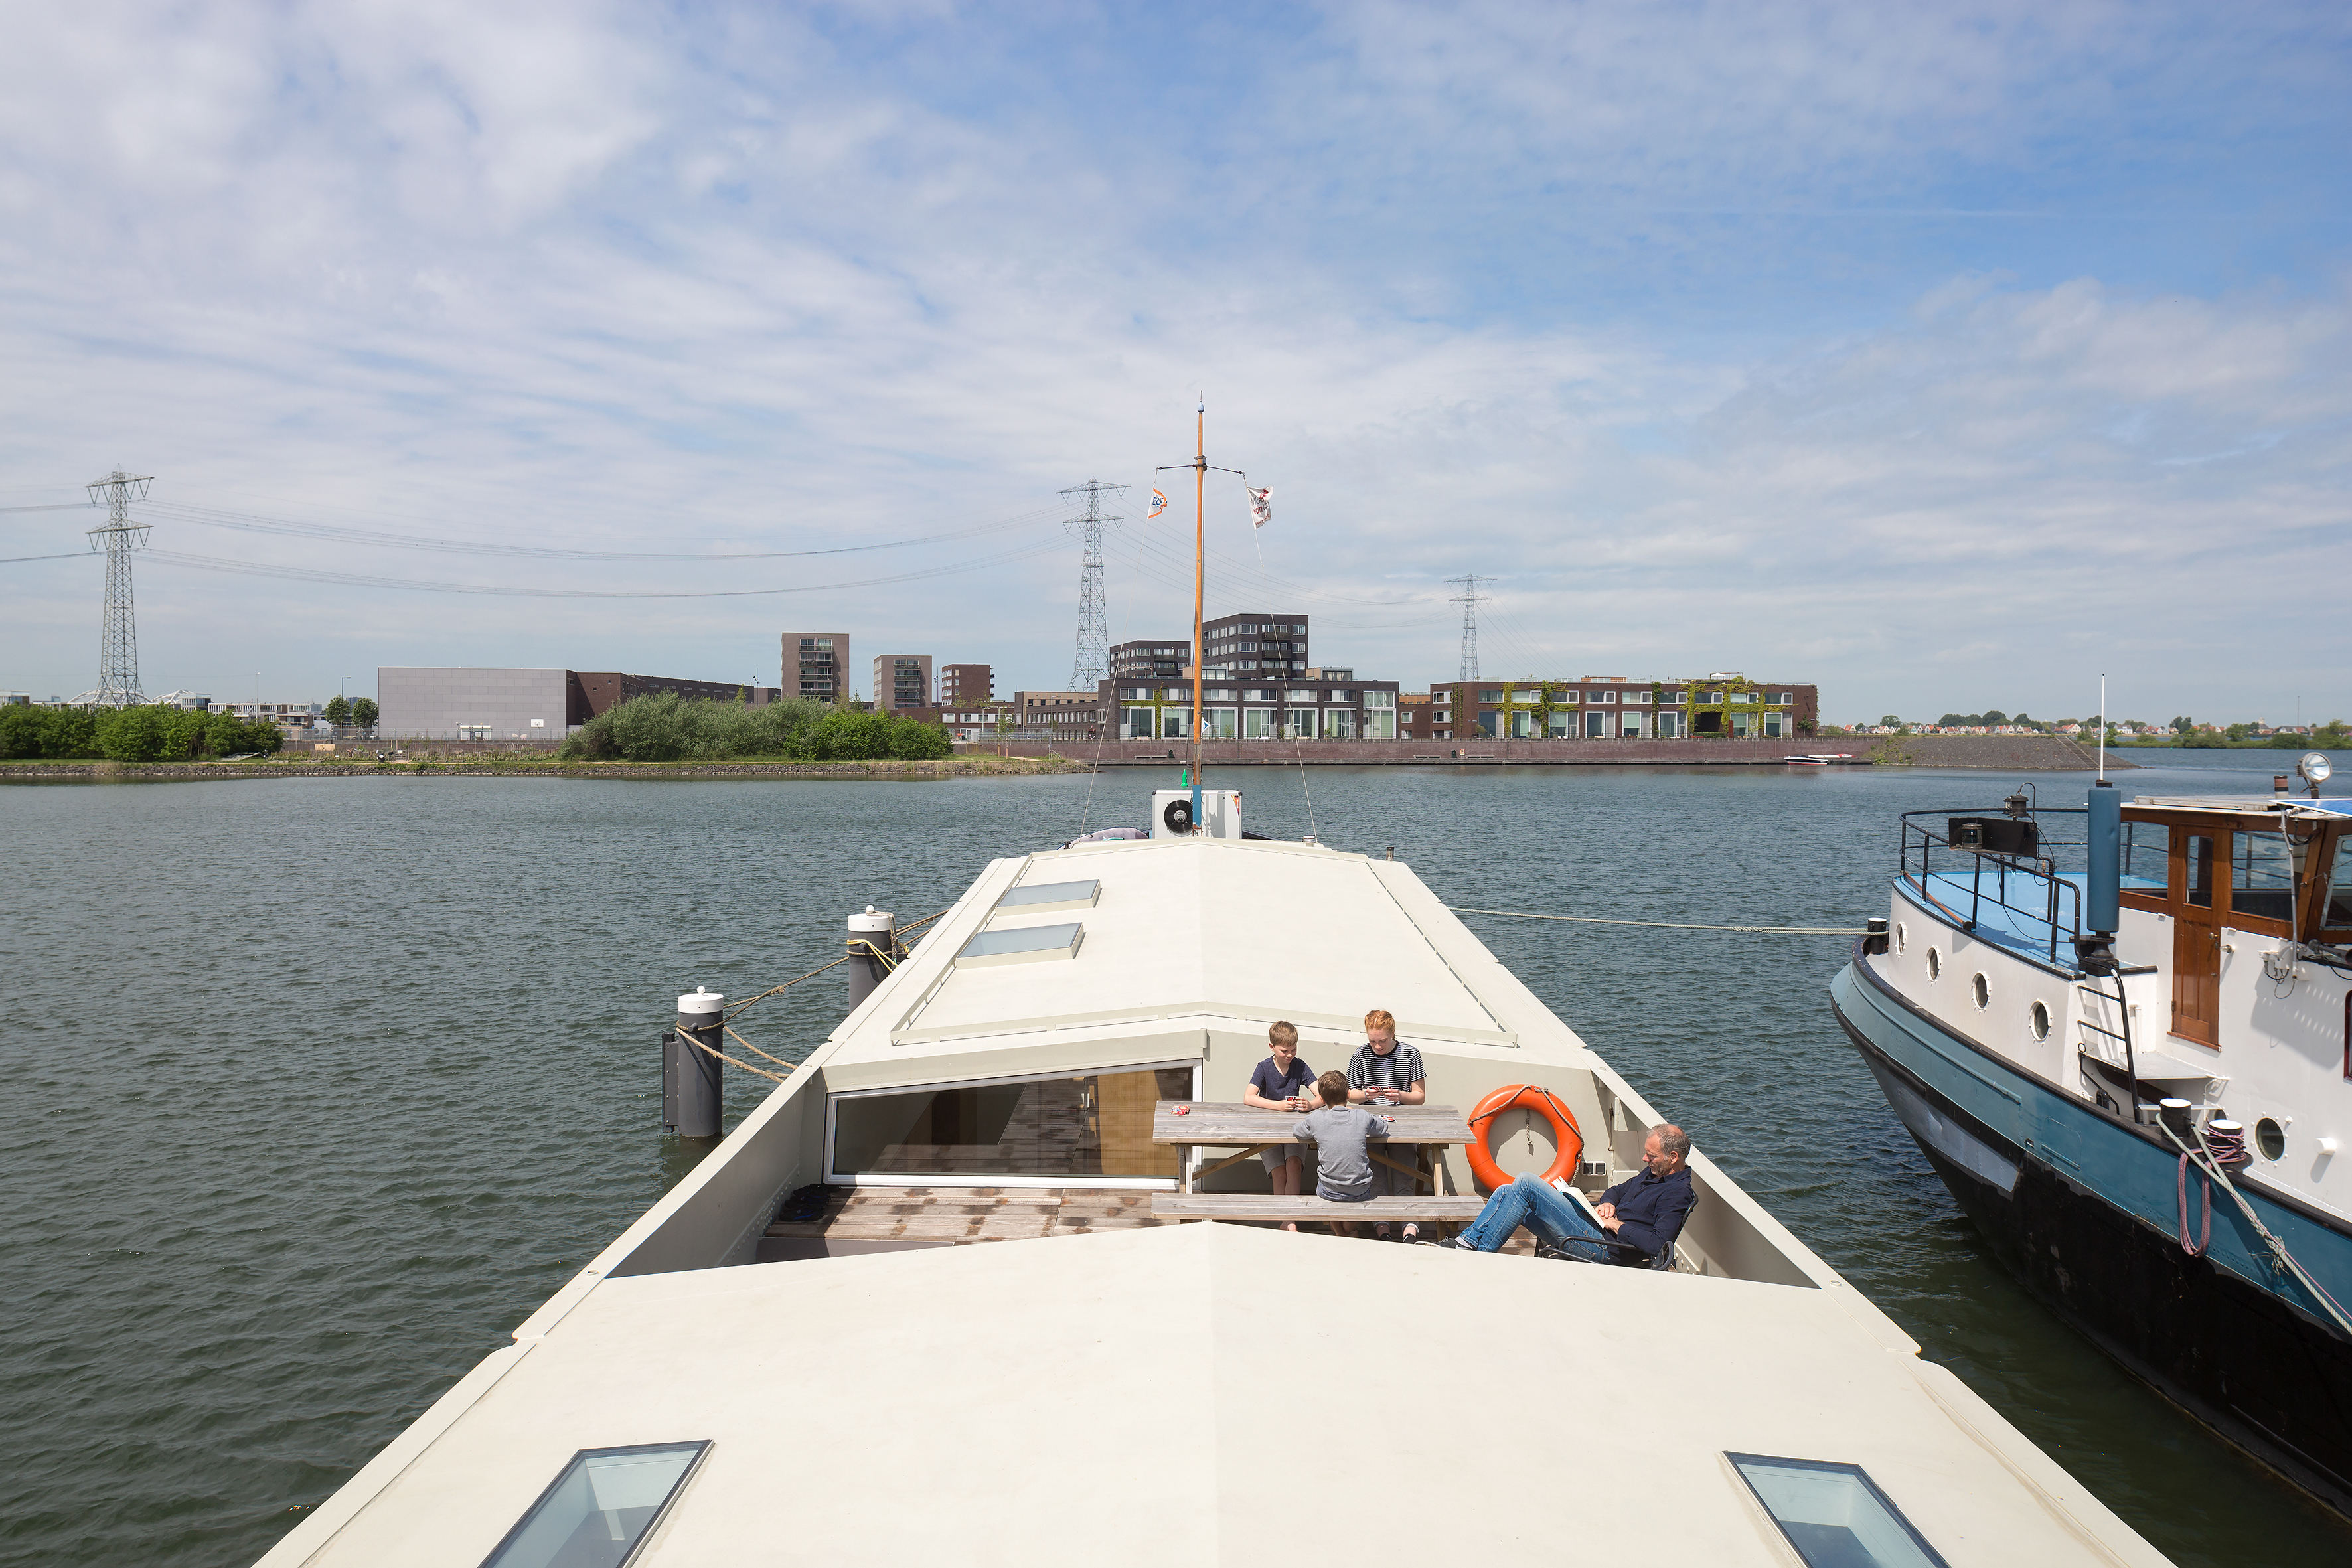 Relaxing on board the converted cargo ship in Amsterdam